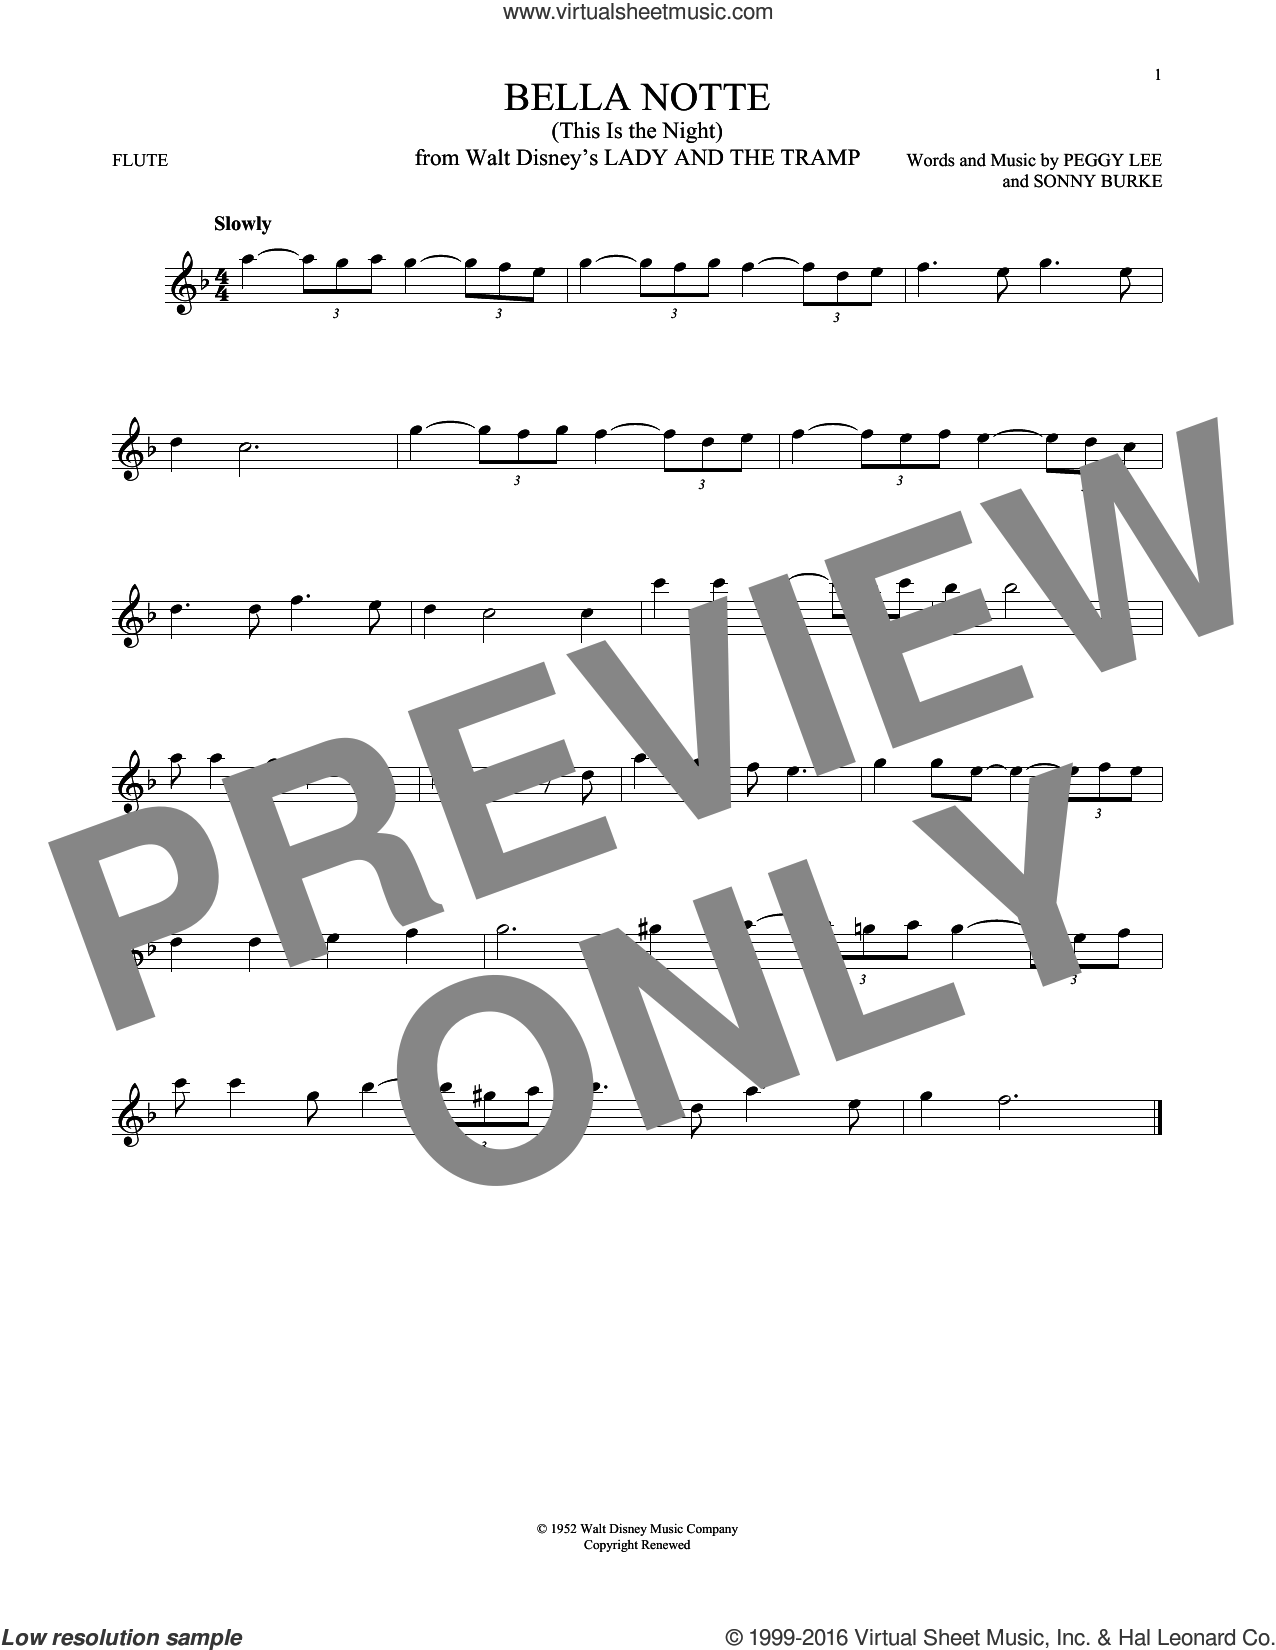 Bella Notte (from Lady And The Tramp) sheet music for flute solo by Peggy Lee, Peggy Lee & Sonny Burke and Sonny Burke, intermediate skill level